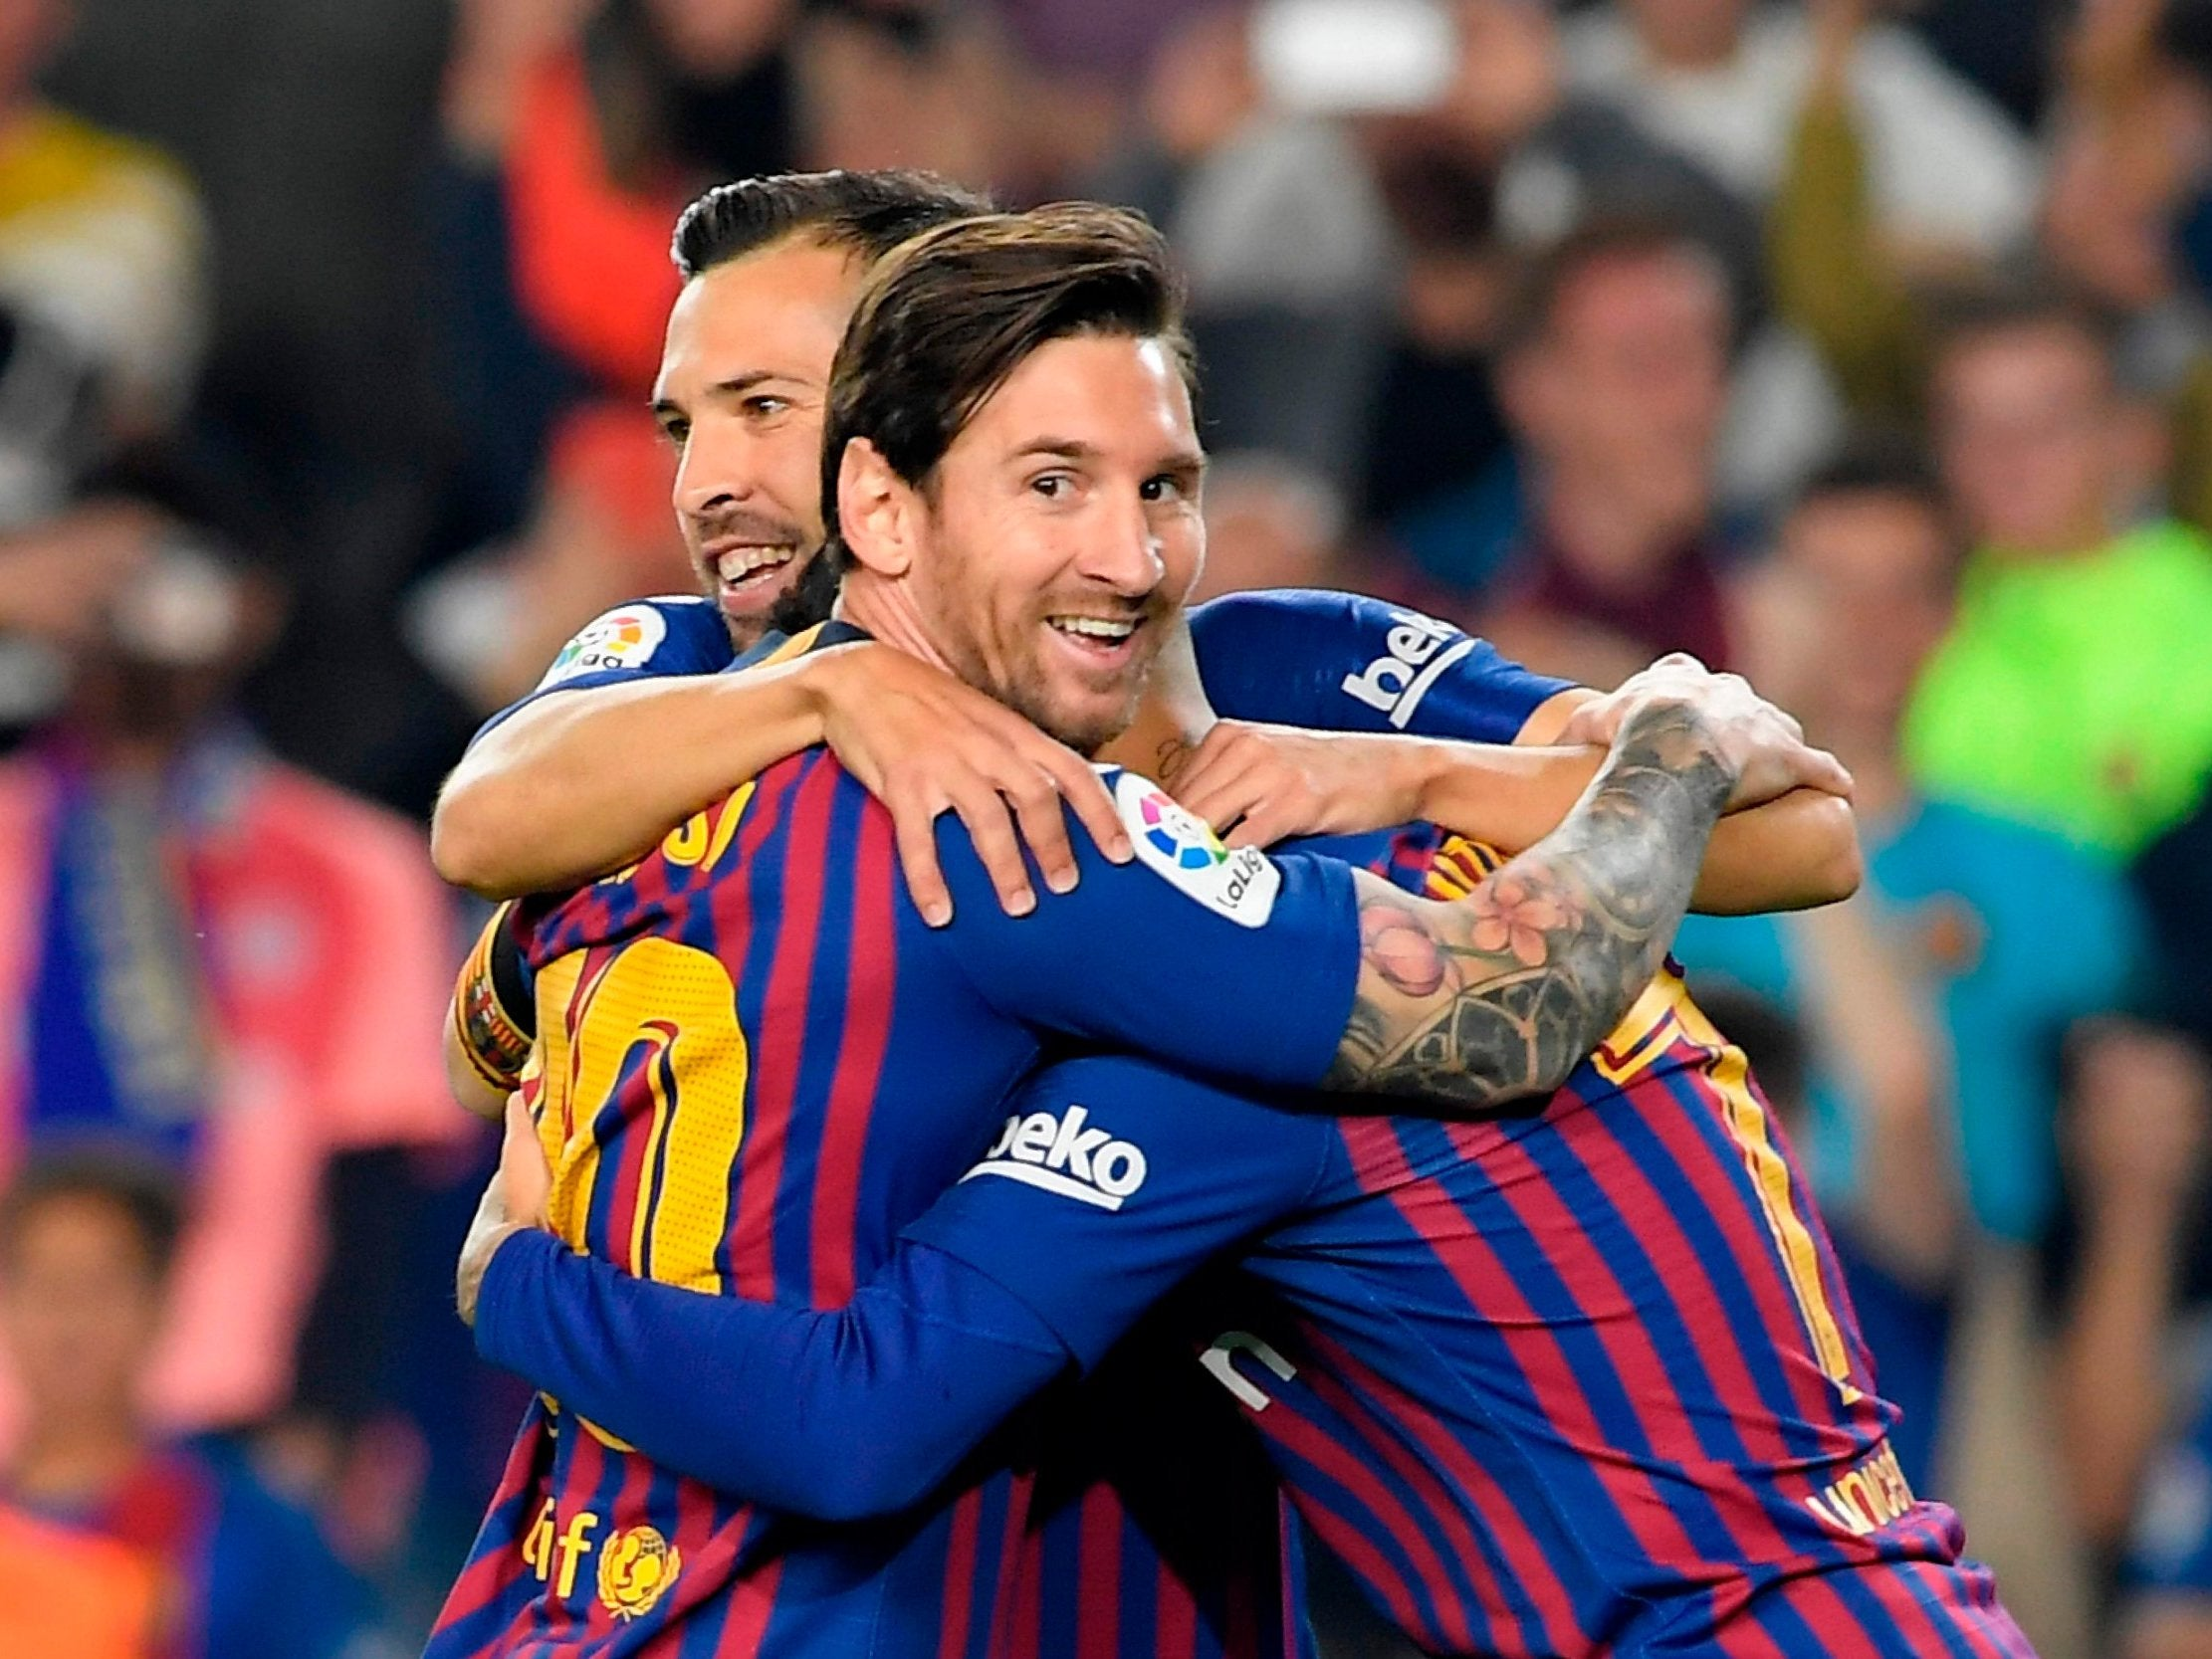 Barcelona Vs Sevilla Live Latest Updates From The Nou Camp As Jersey Couple Catalans Capitalise On Real Madrids Defeat Independent